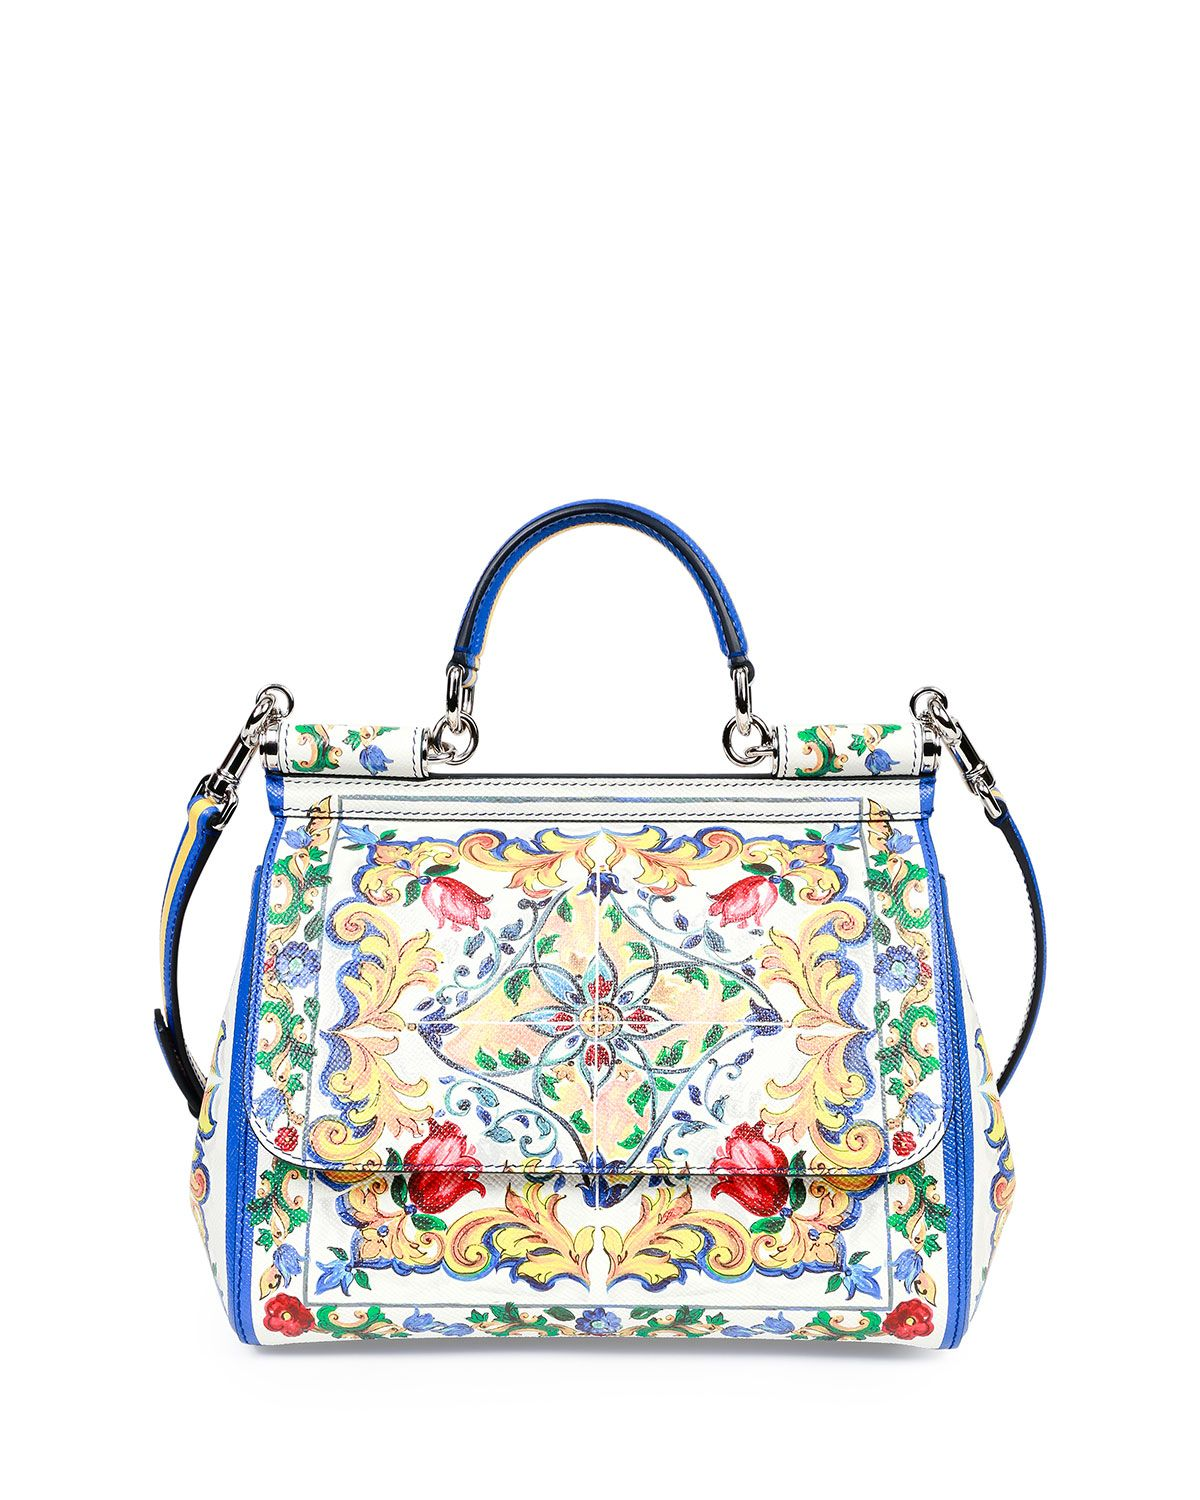 85336c9ba75 Miss Sicily Medium Leather St. Maioliche Tile Satchel Bag, Multicolor,  Size  M, Multi - Dolce   Gabbana